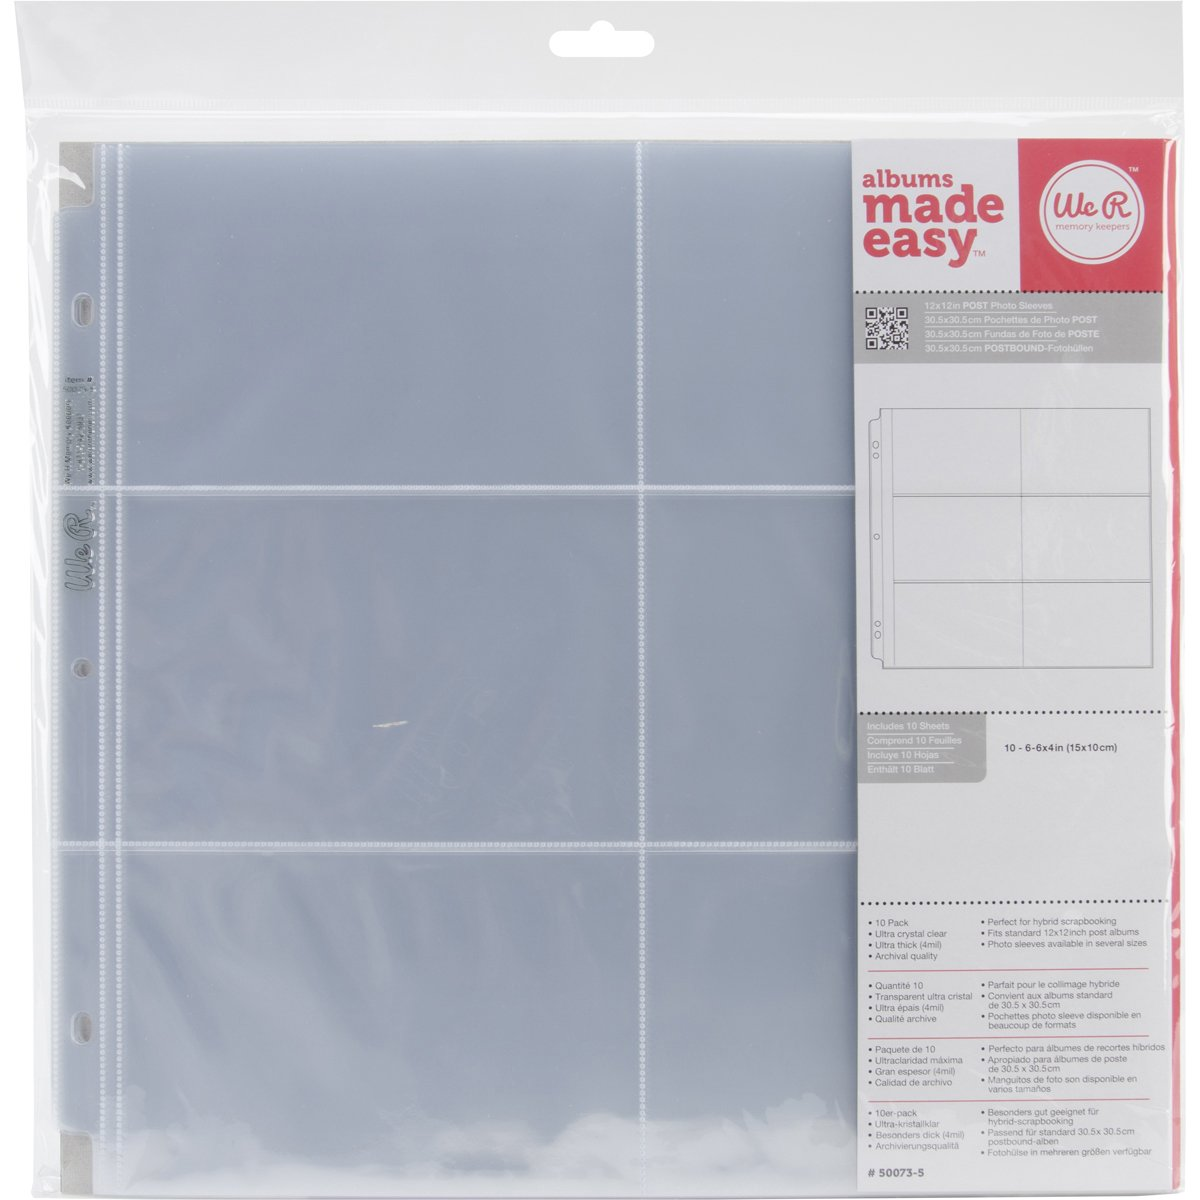 We R Memory Keepers We R Postbound Photo Sleeves 12x12 10/Pkg-Six 4x6 Pockets 660153